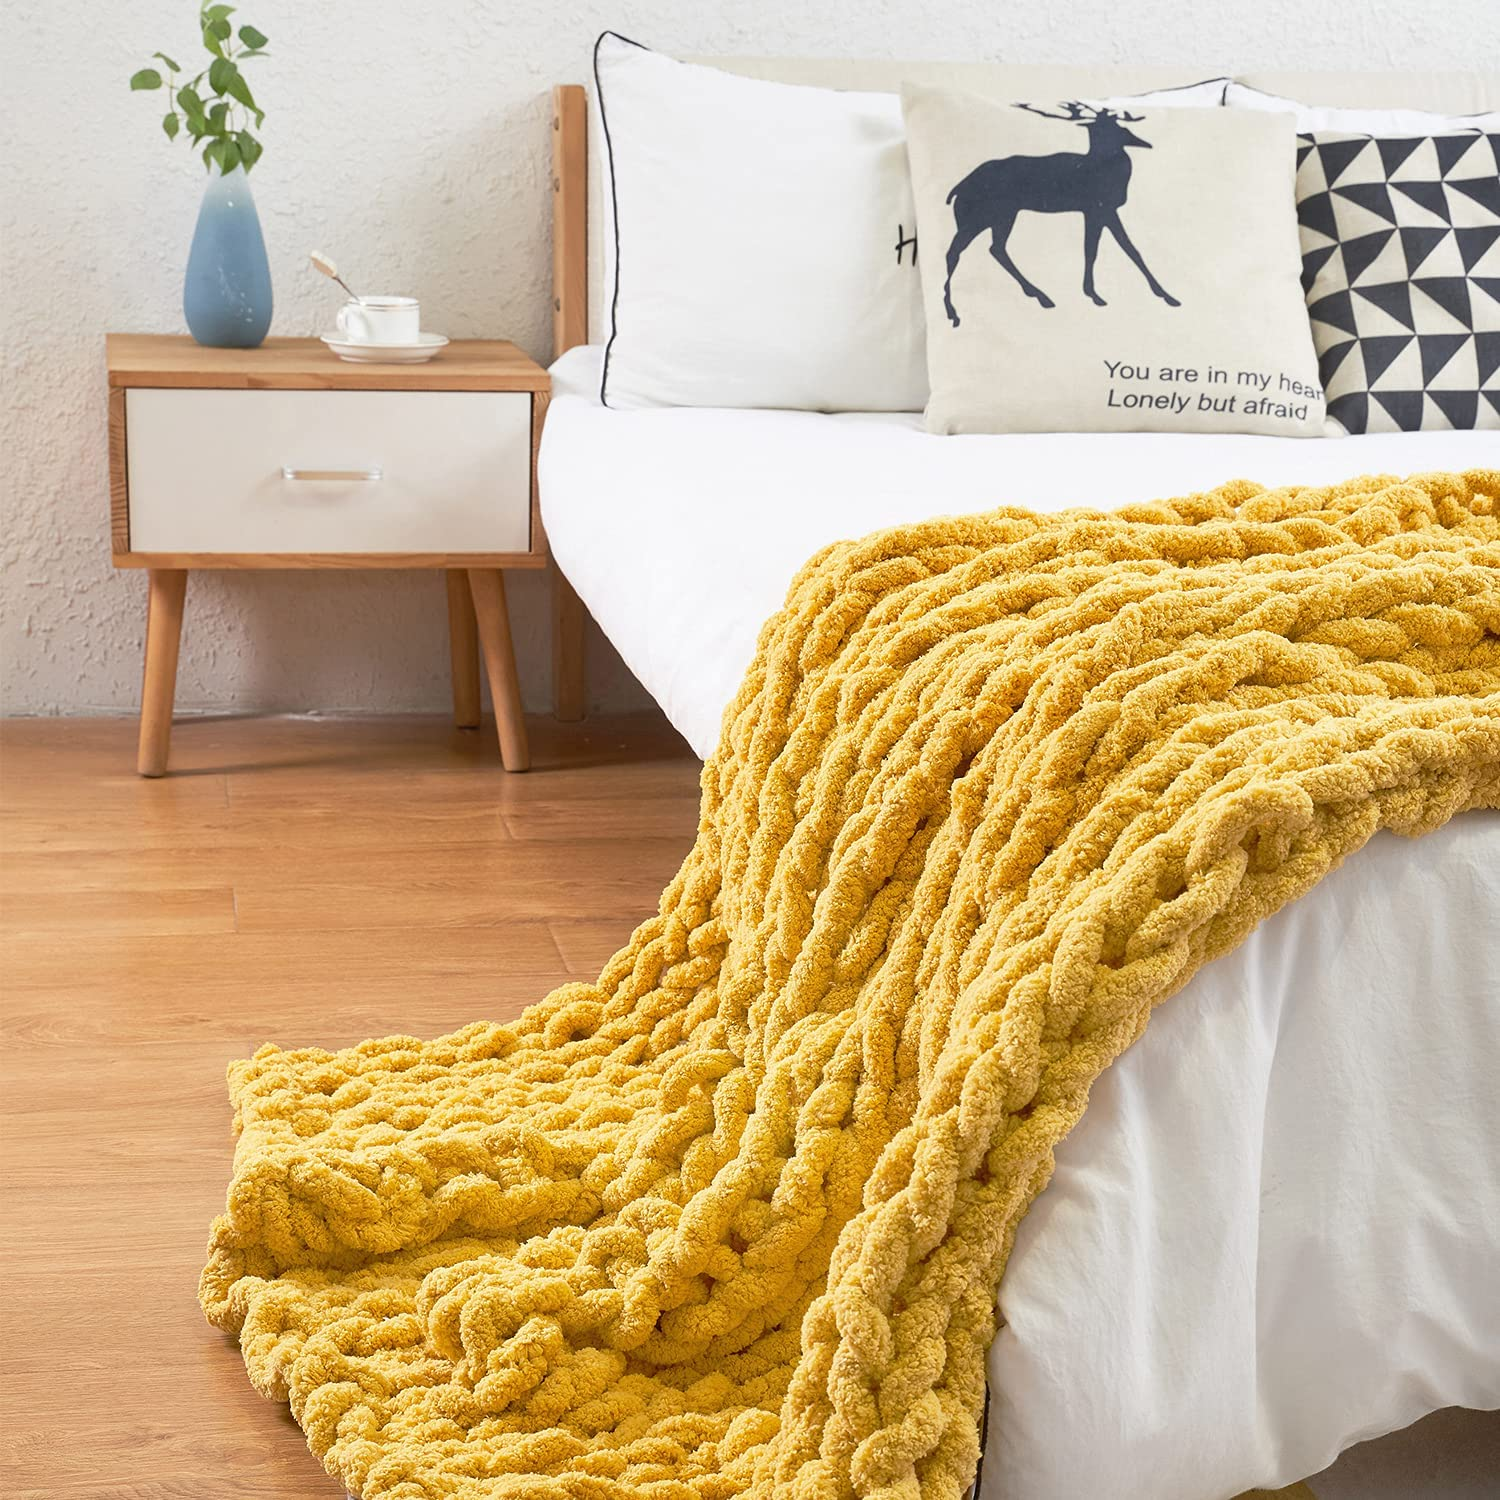 ERLYEEN Chunky Knit Blanket Chenille Large Soft Warm 期間限定で特別価格 特価キャンペーン Cable Throw